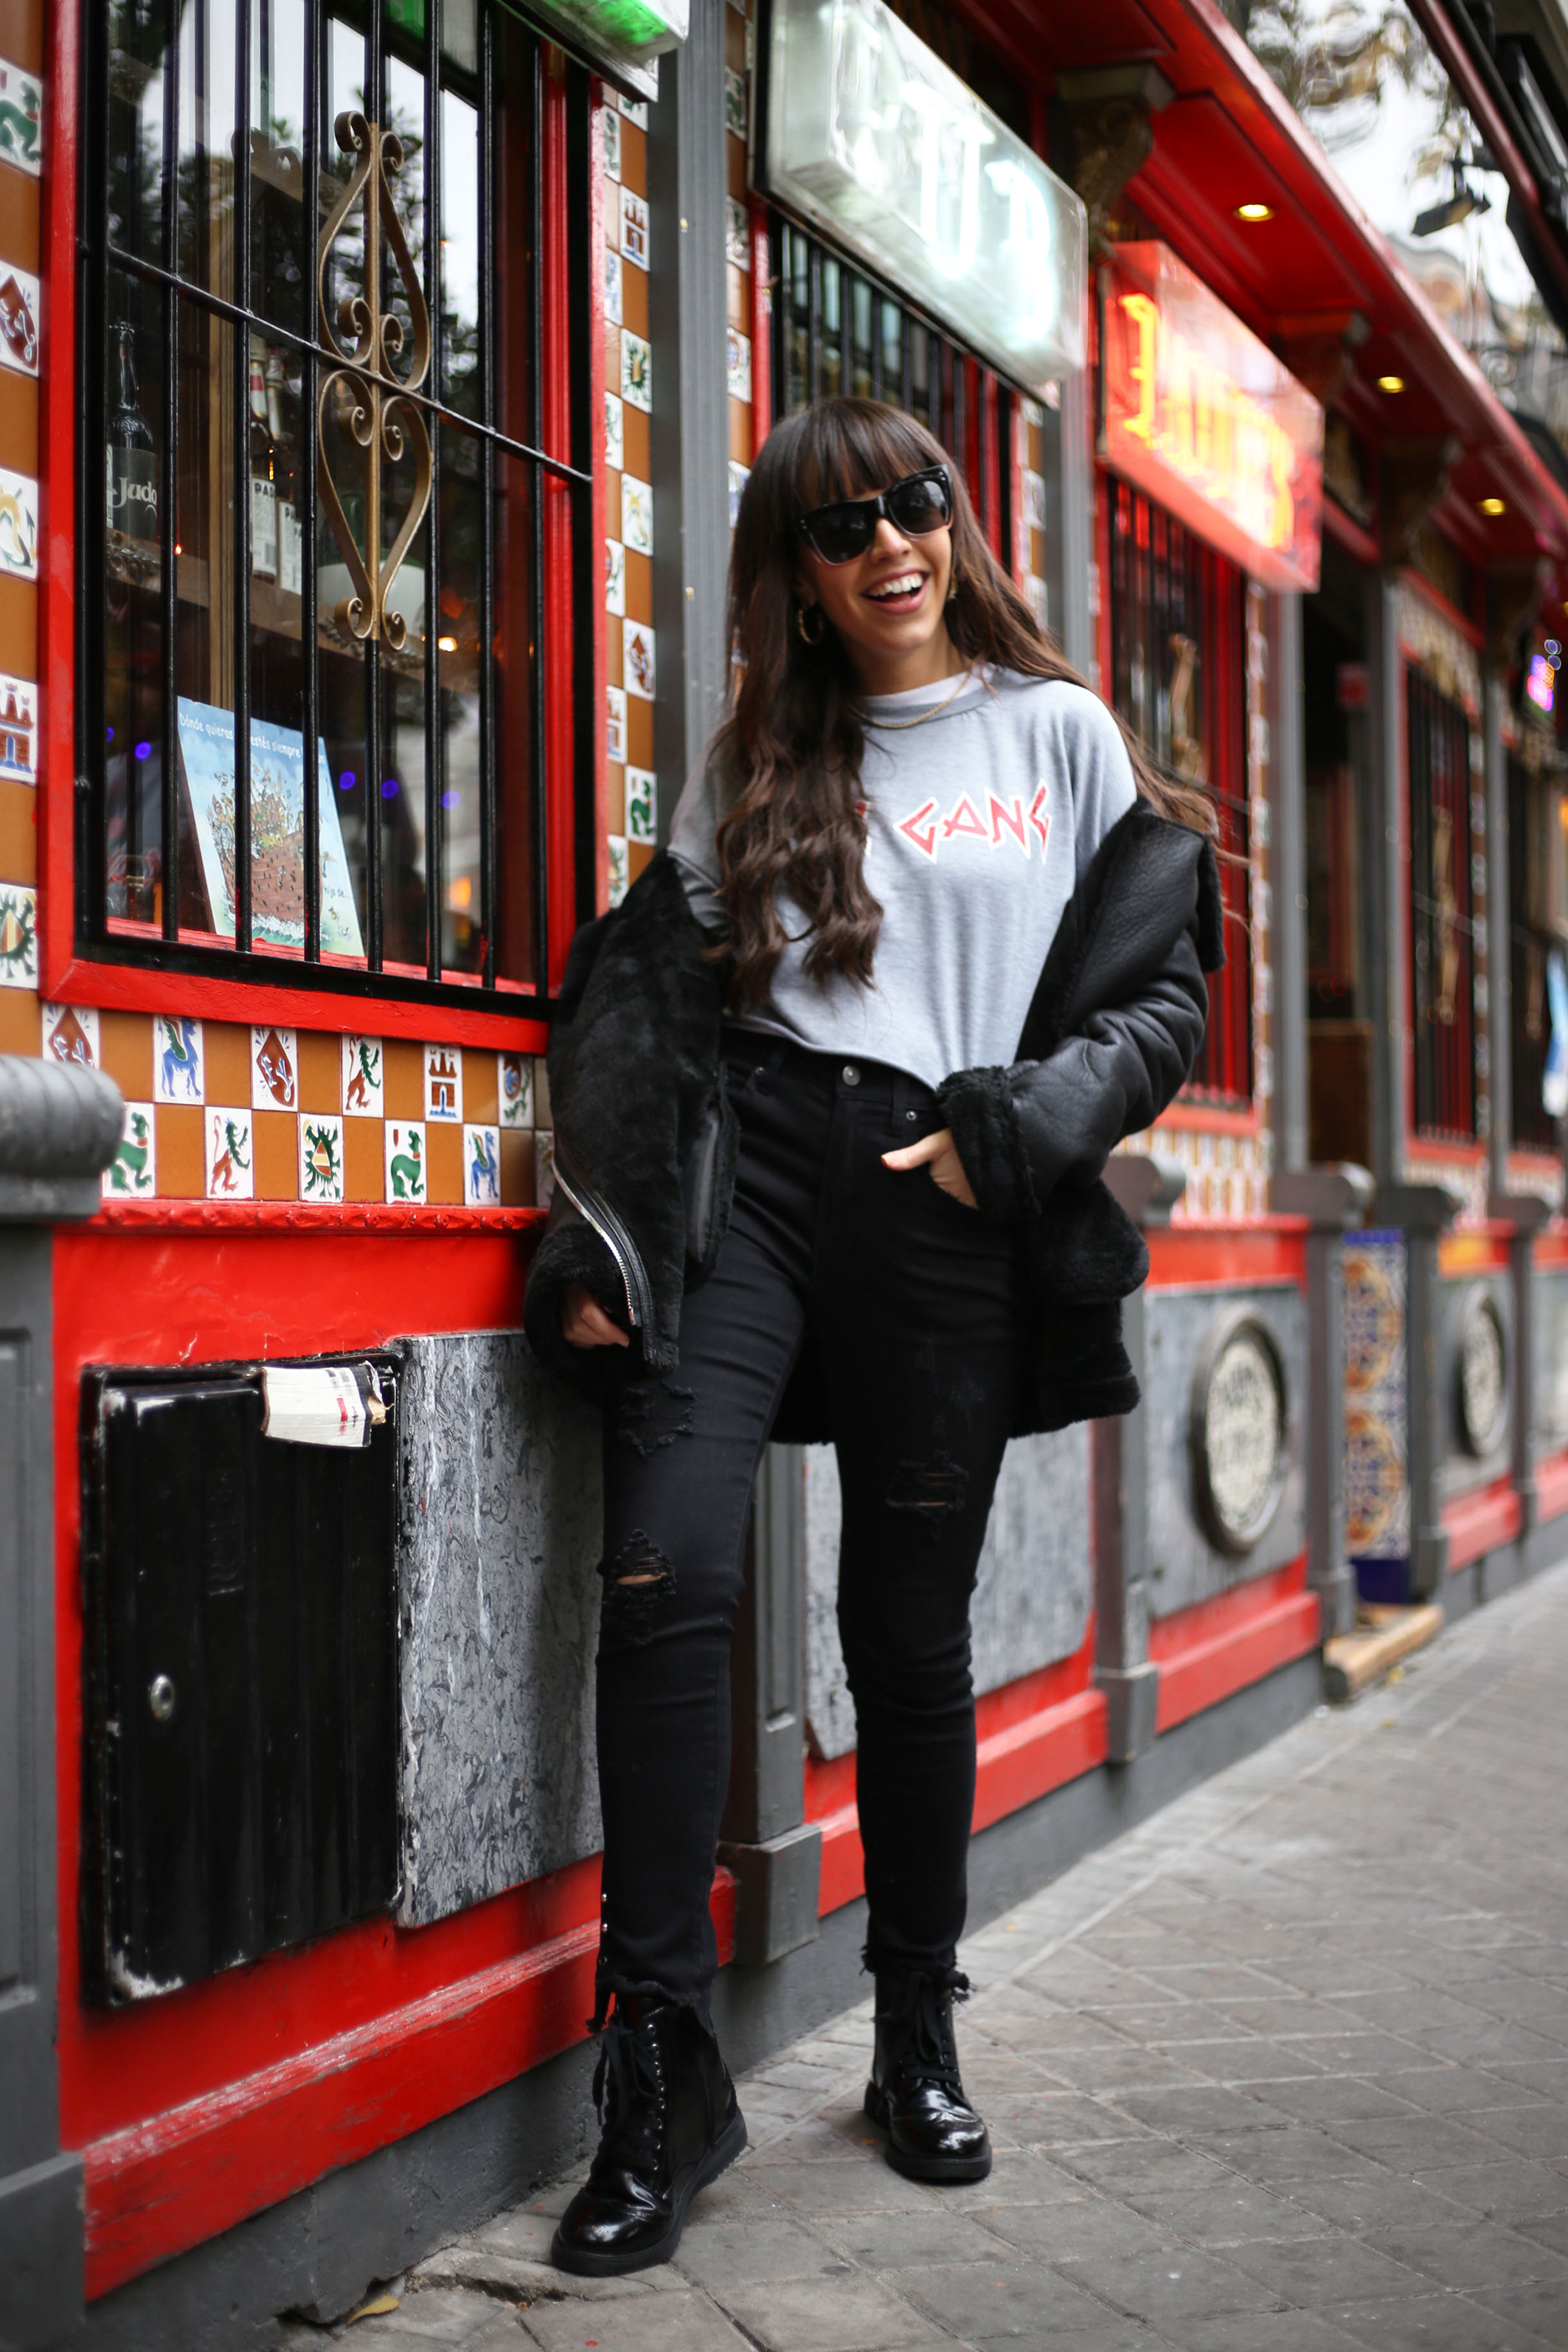 girl power, girl gang outfit, winter outfit, street style